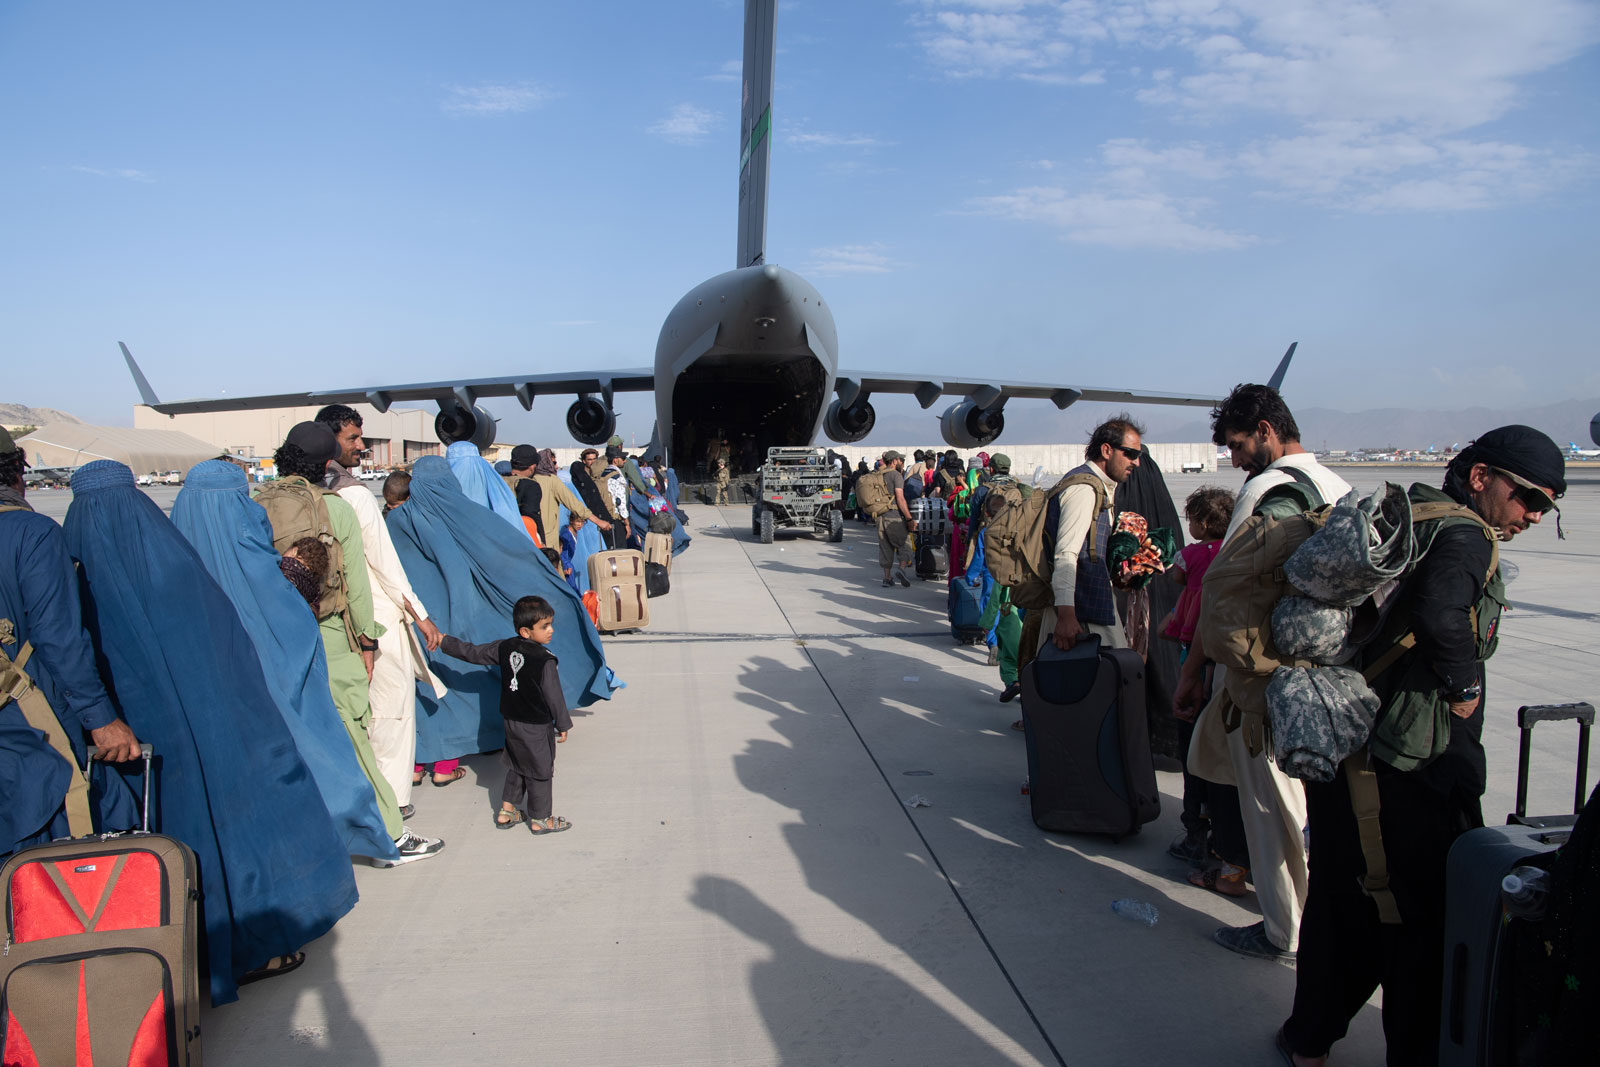 In this handout provided by U.S. Central Command Public Affairs, passengers are seen lining up to board a U.S. Air Force C-17 Globemaster III at Hamid Karzai International Airport on August 24.